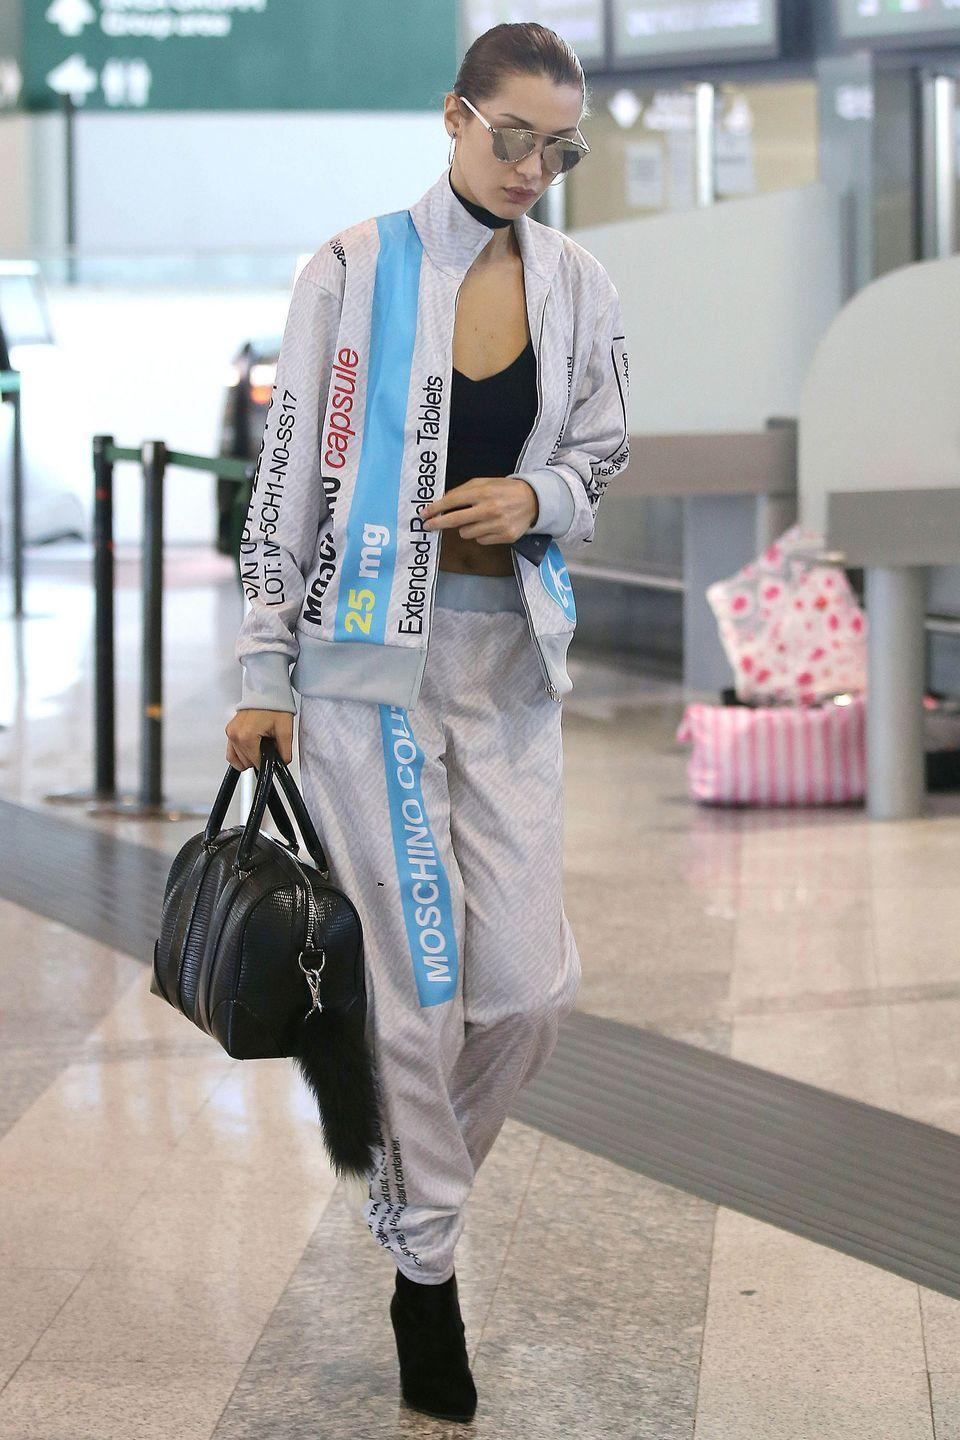 <p>Bella wears a Moschino tracksuit, black heeled boots, a black leather satchel and black top in the Milan airport. </p>